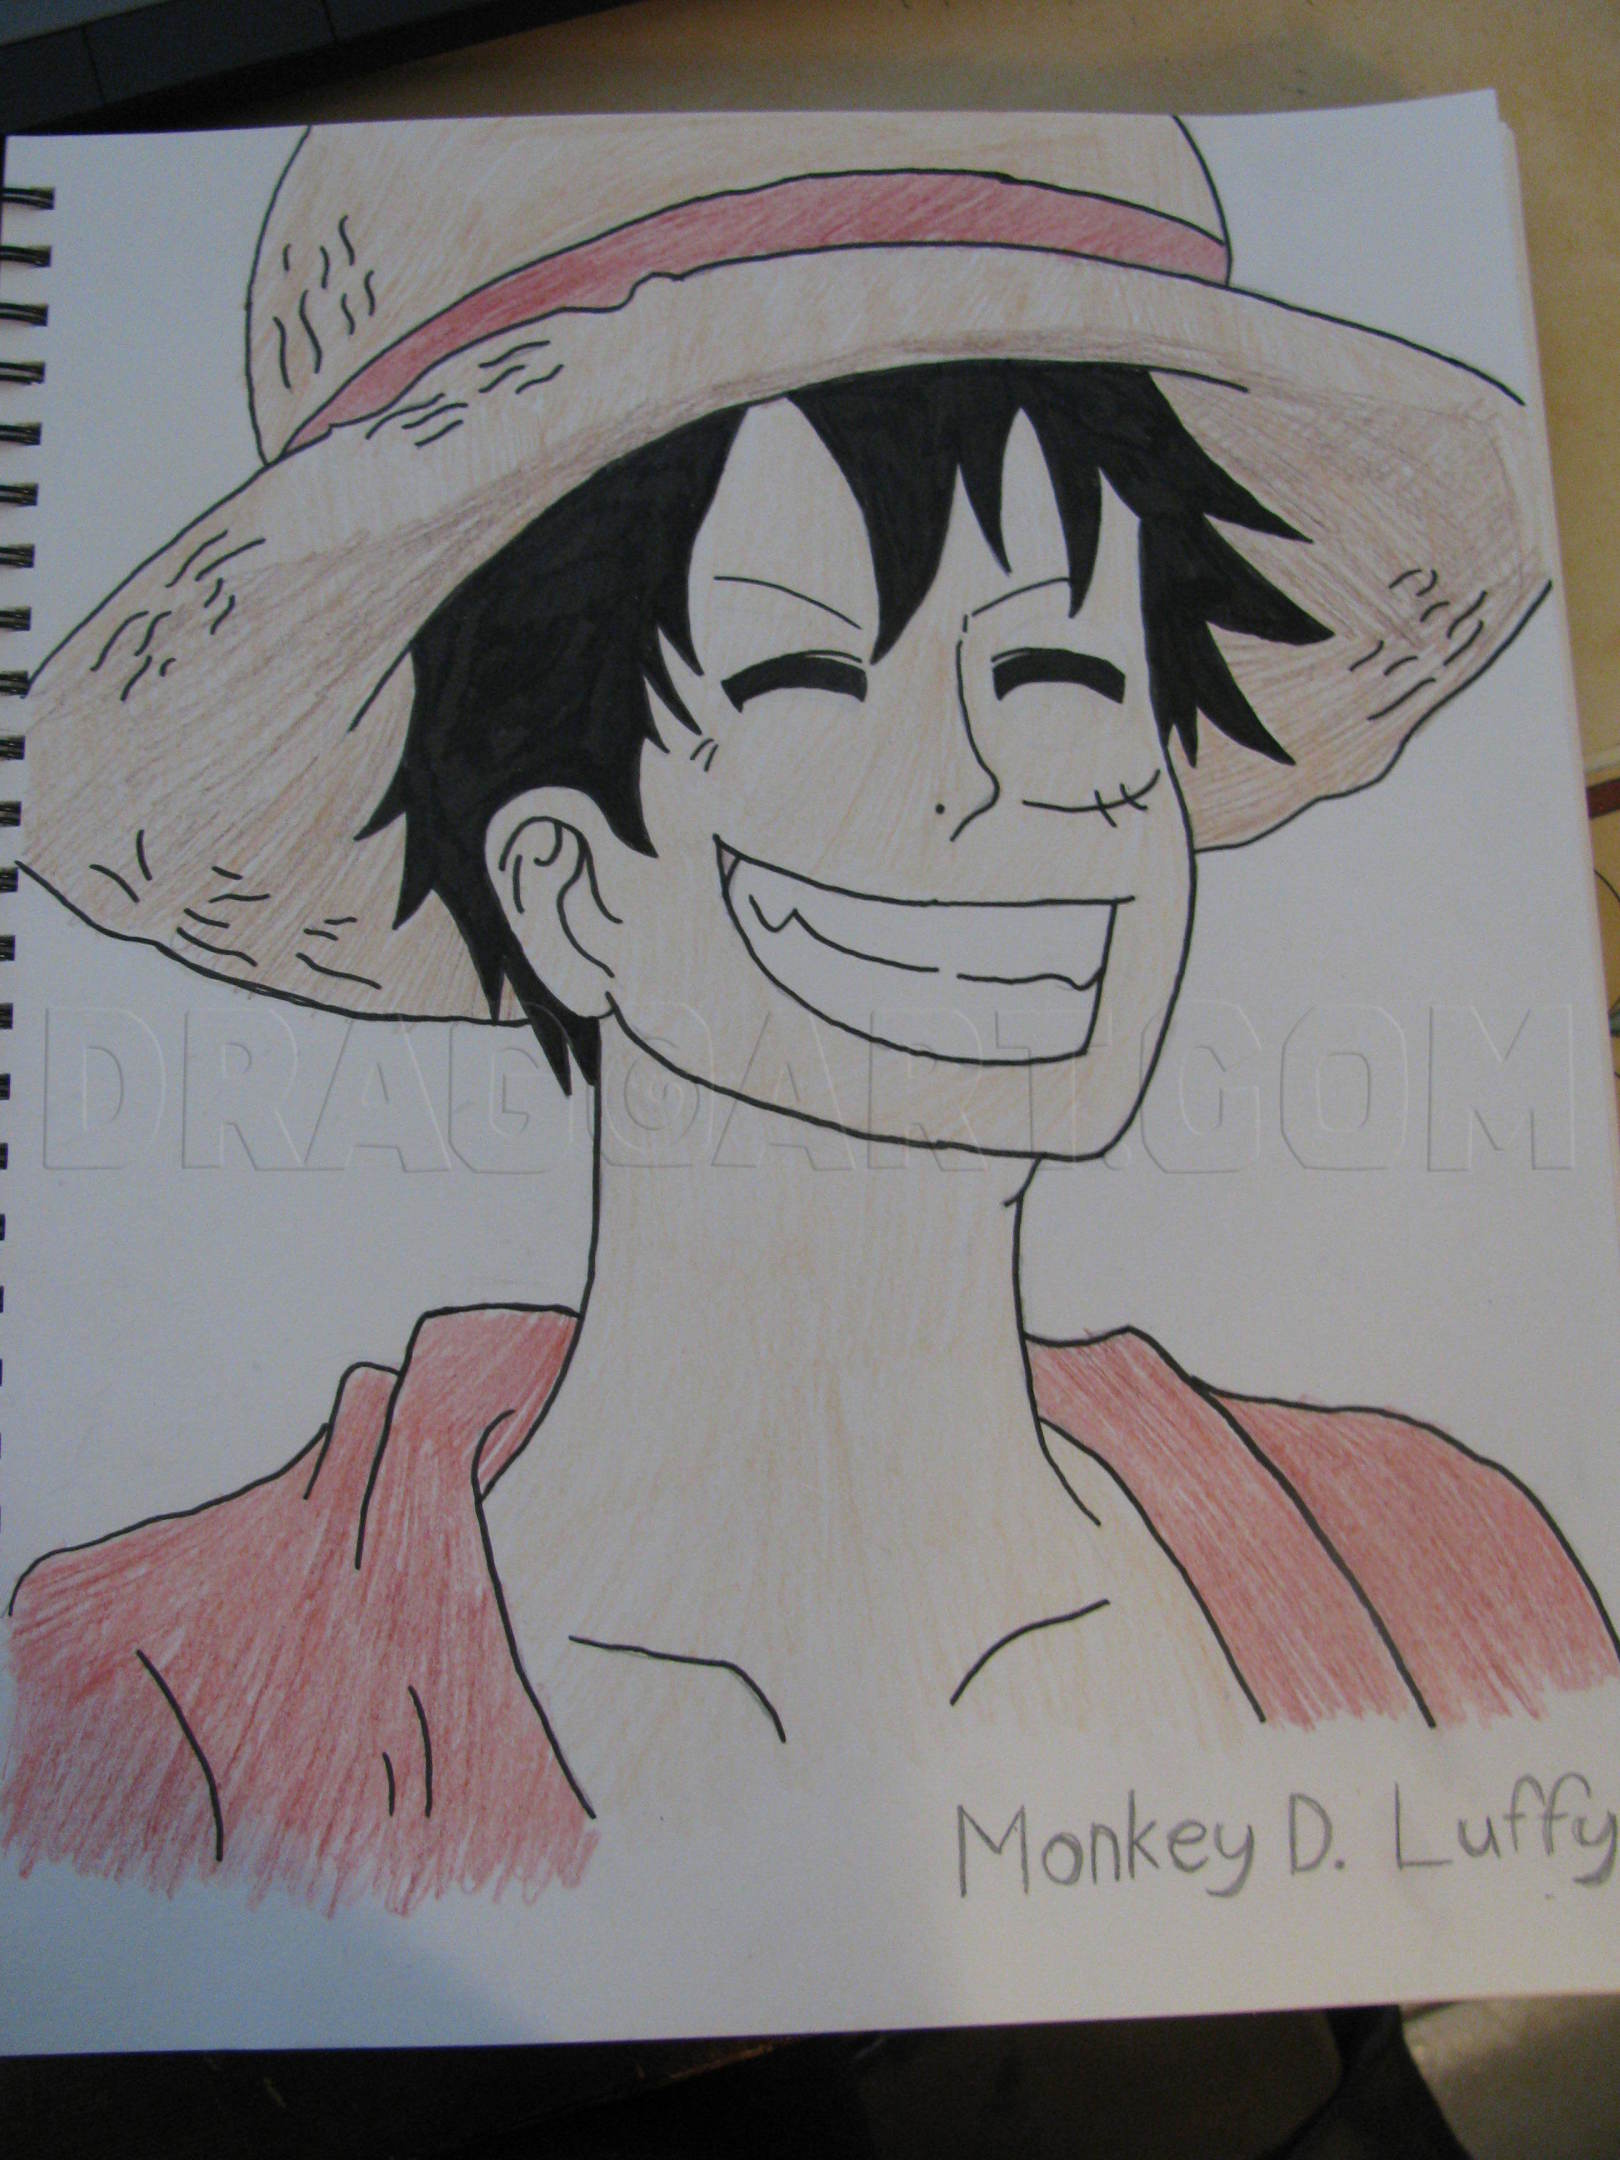 In all honesty if you want to draw a circle or close to it easier freehand put your arm down bend in a rocking motion at the wrist and lightly draw a. Draw Luffy D Monkey Step By Step Drawing Guide By Spidergirl13 Dragoart Com